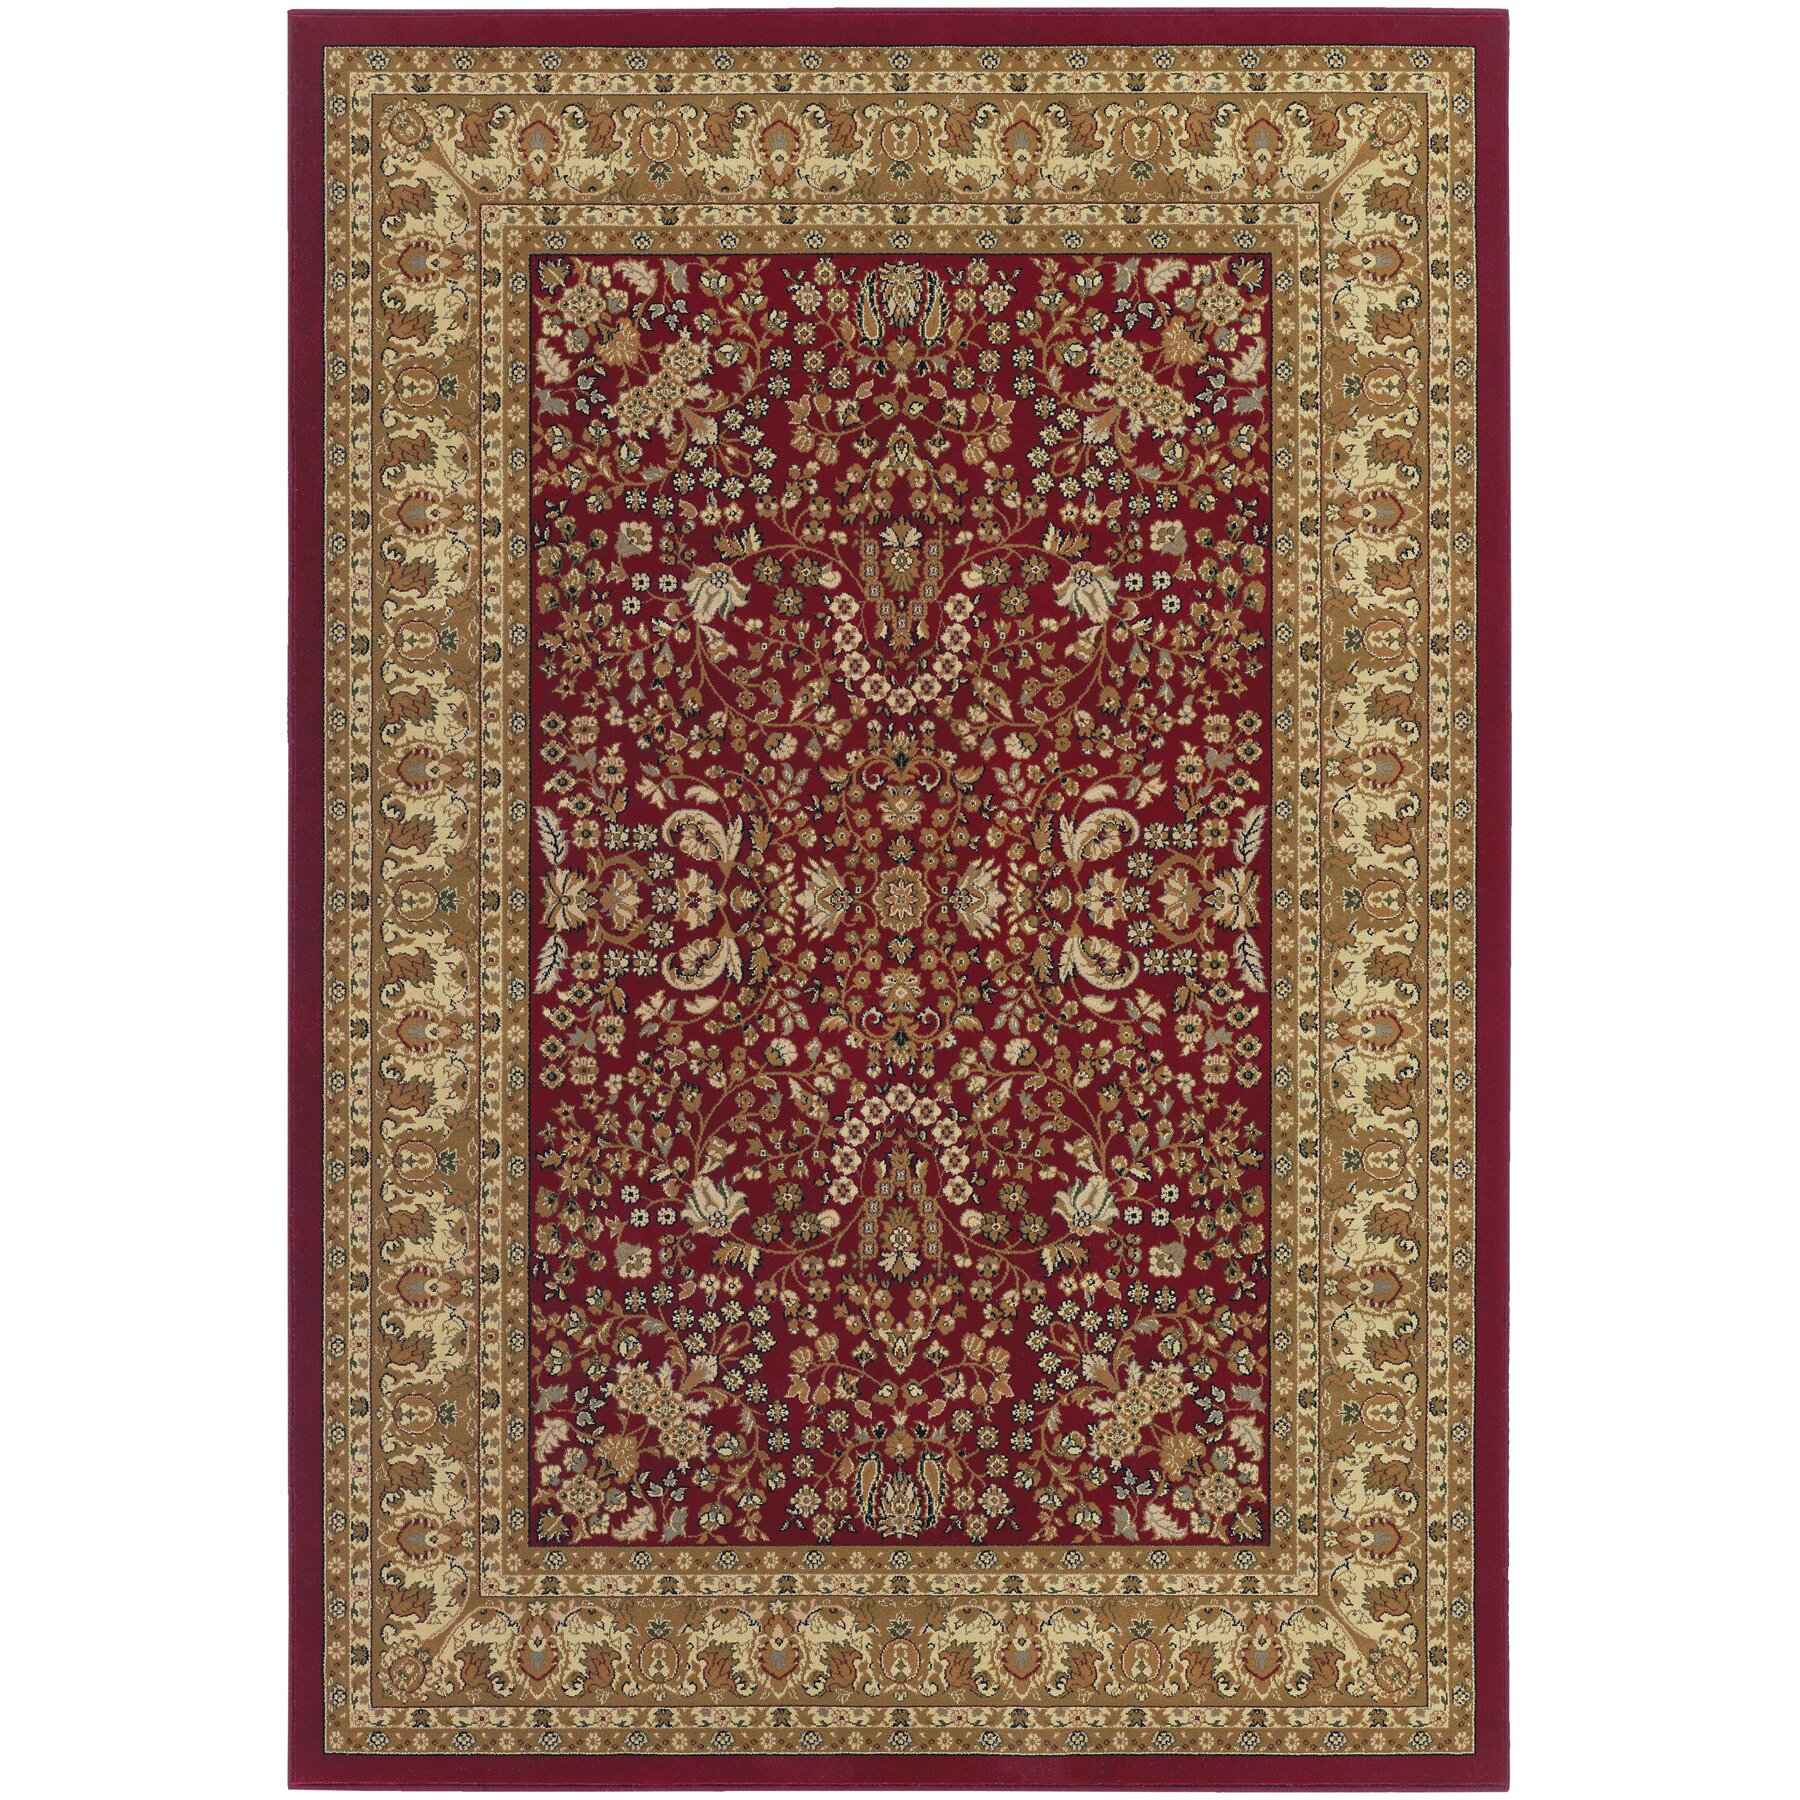 Couristan izmir floral mashhad red area rug reviews for Red floral area rug